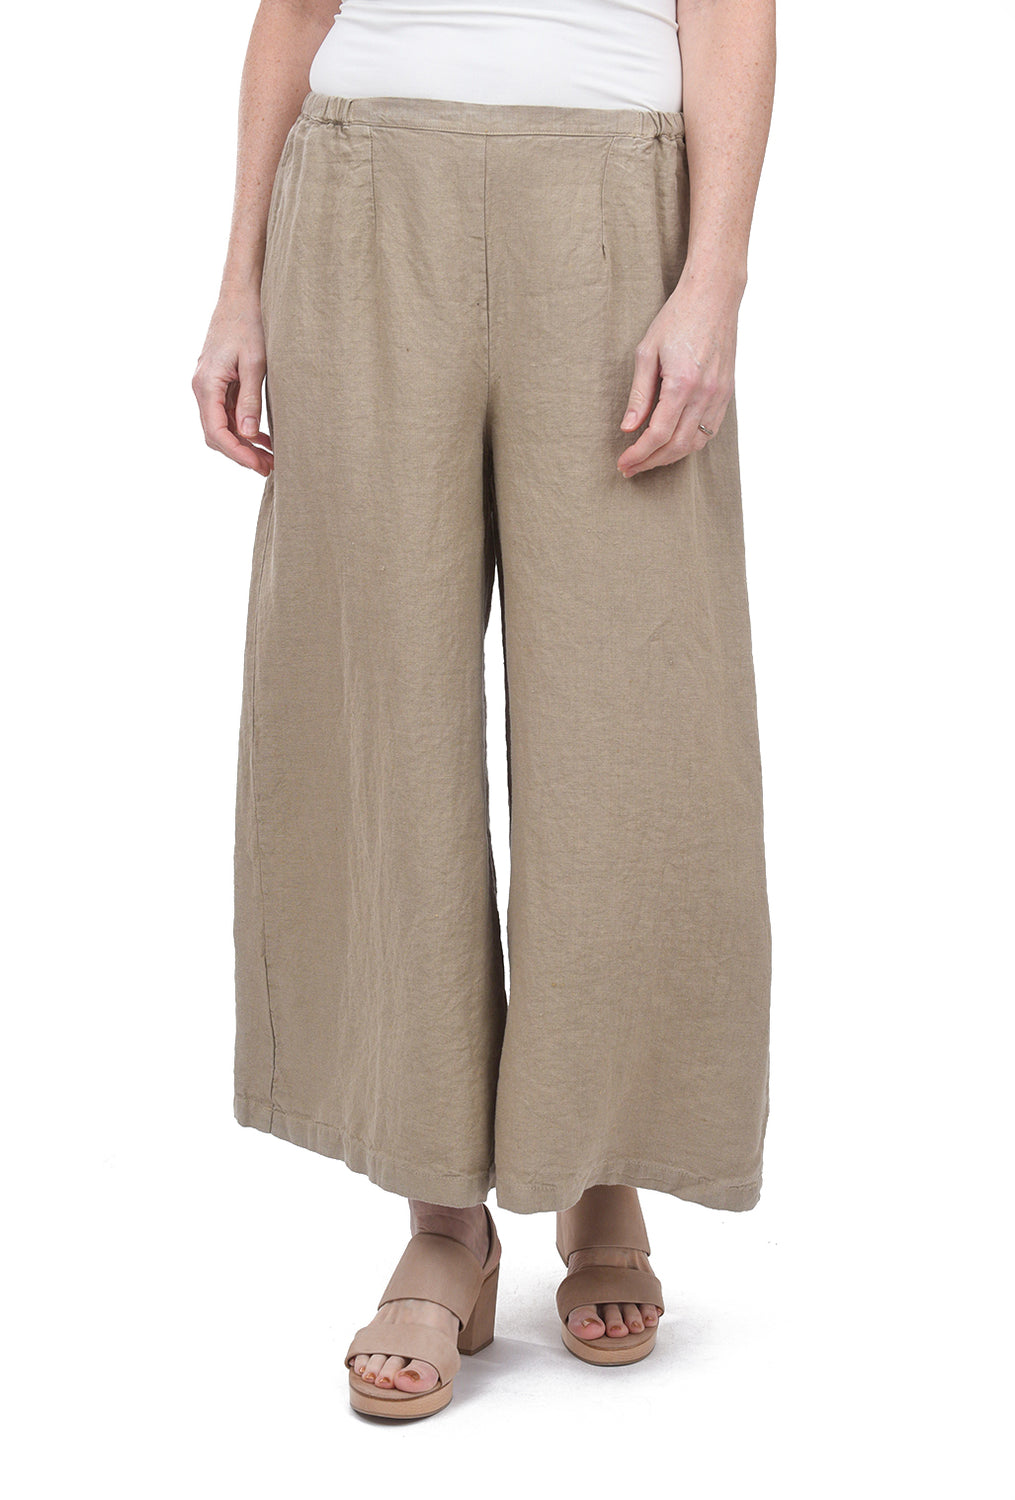 Cut Loose Heavy Linen Wide-Leg Ankle Pant, Jute